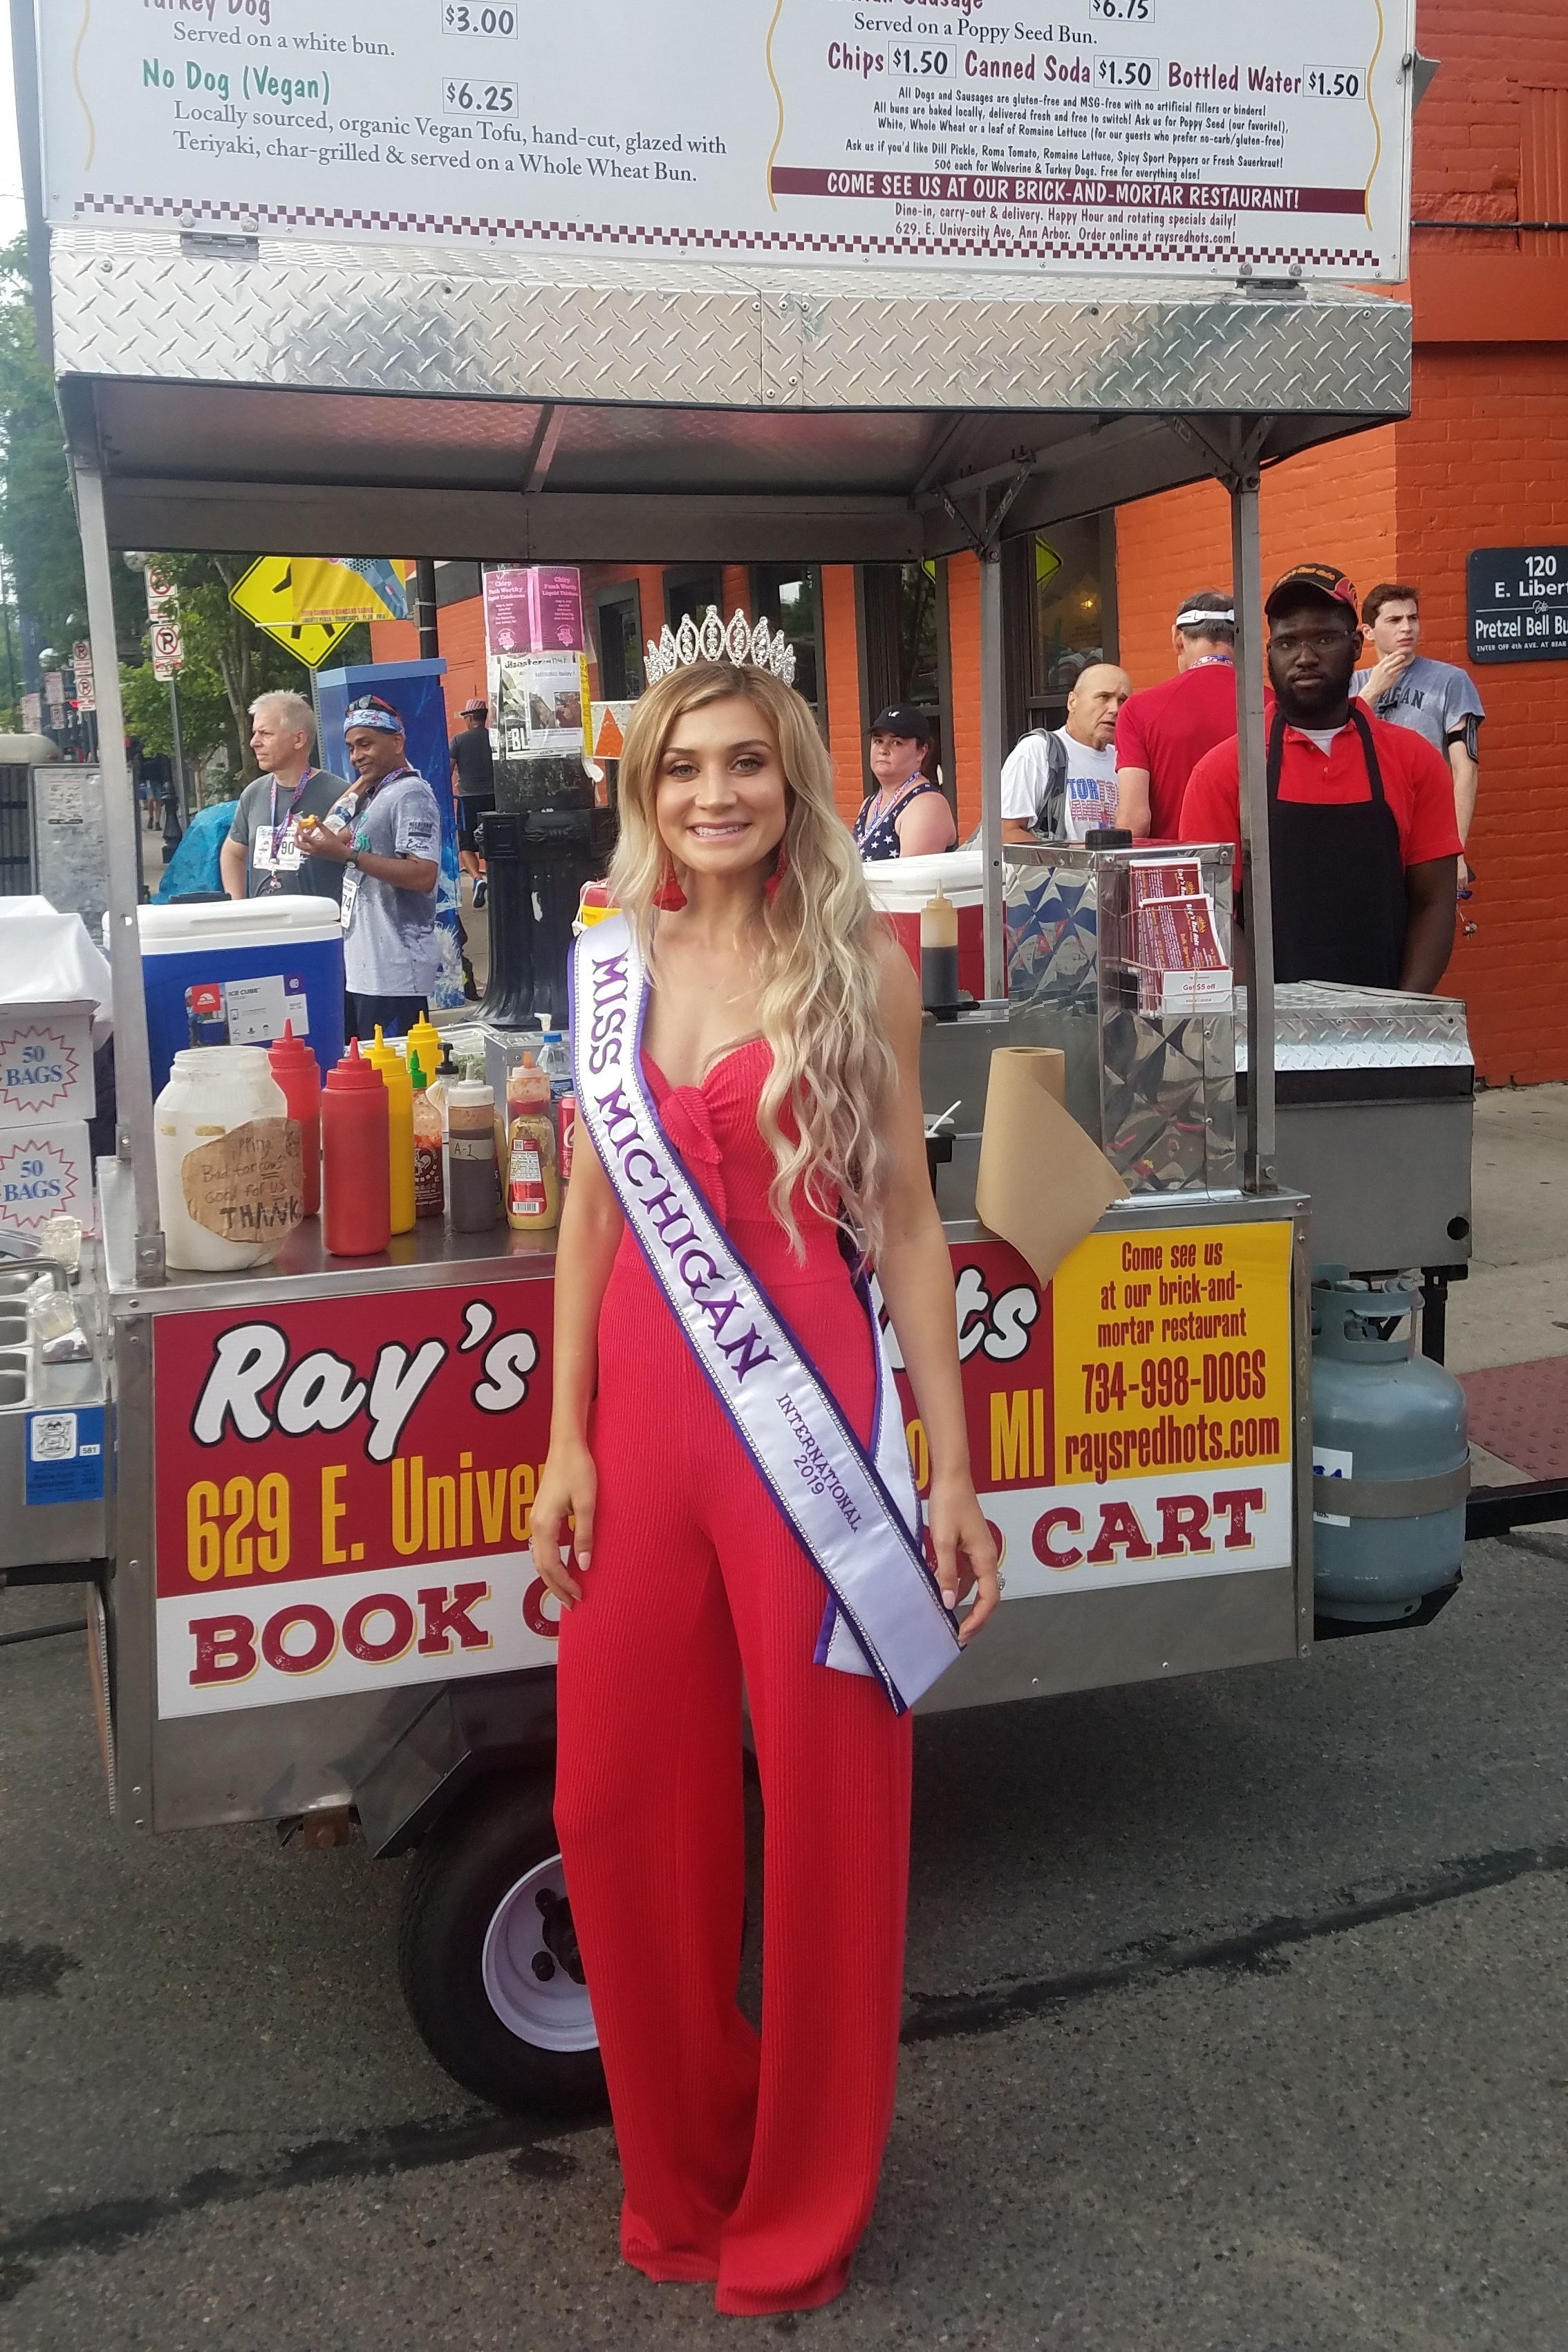 Miss Michigan International 2019 stops by to get her mom a dog at the Firecracker 5k / Fourth of July Parade in downtown Ann Arbor.